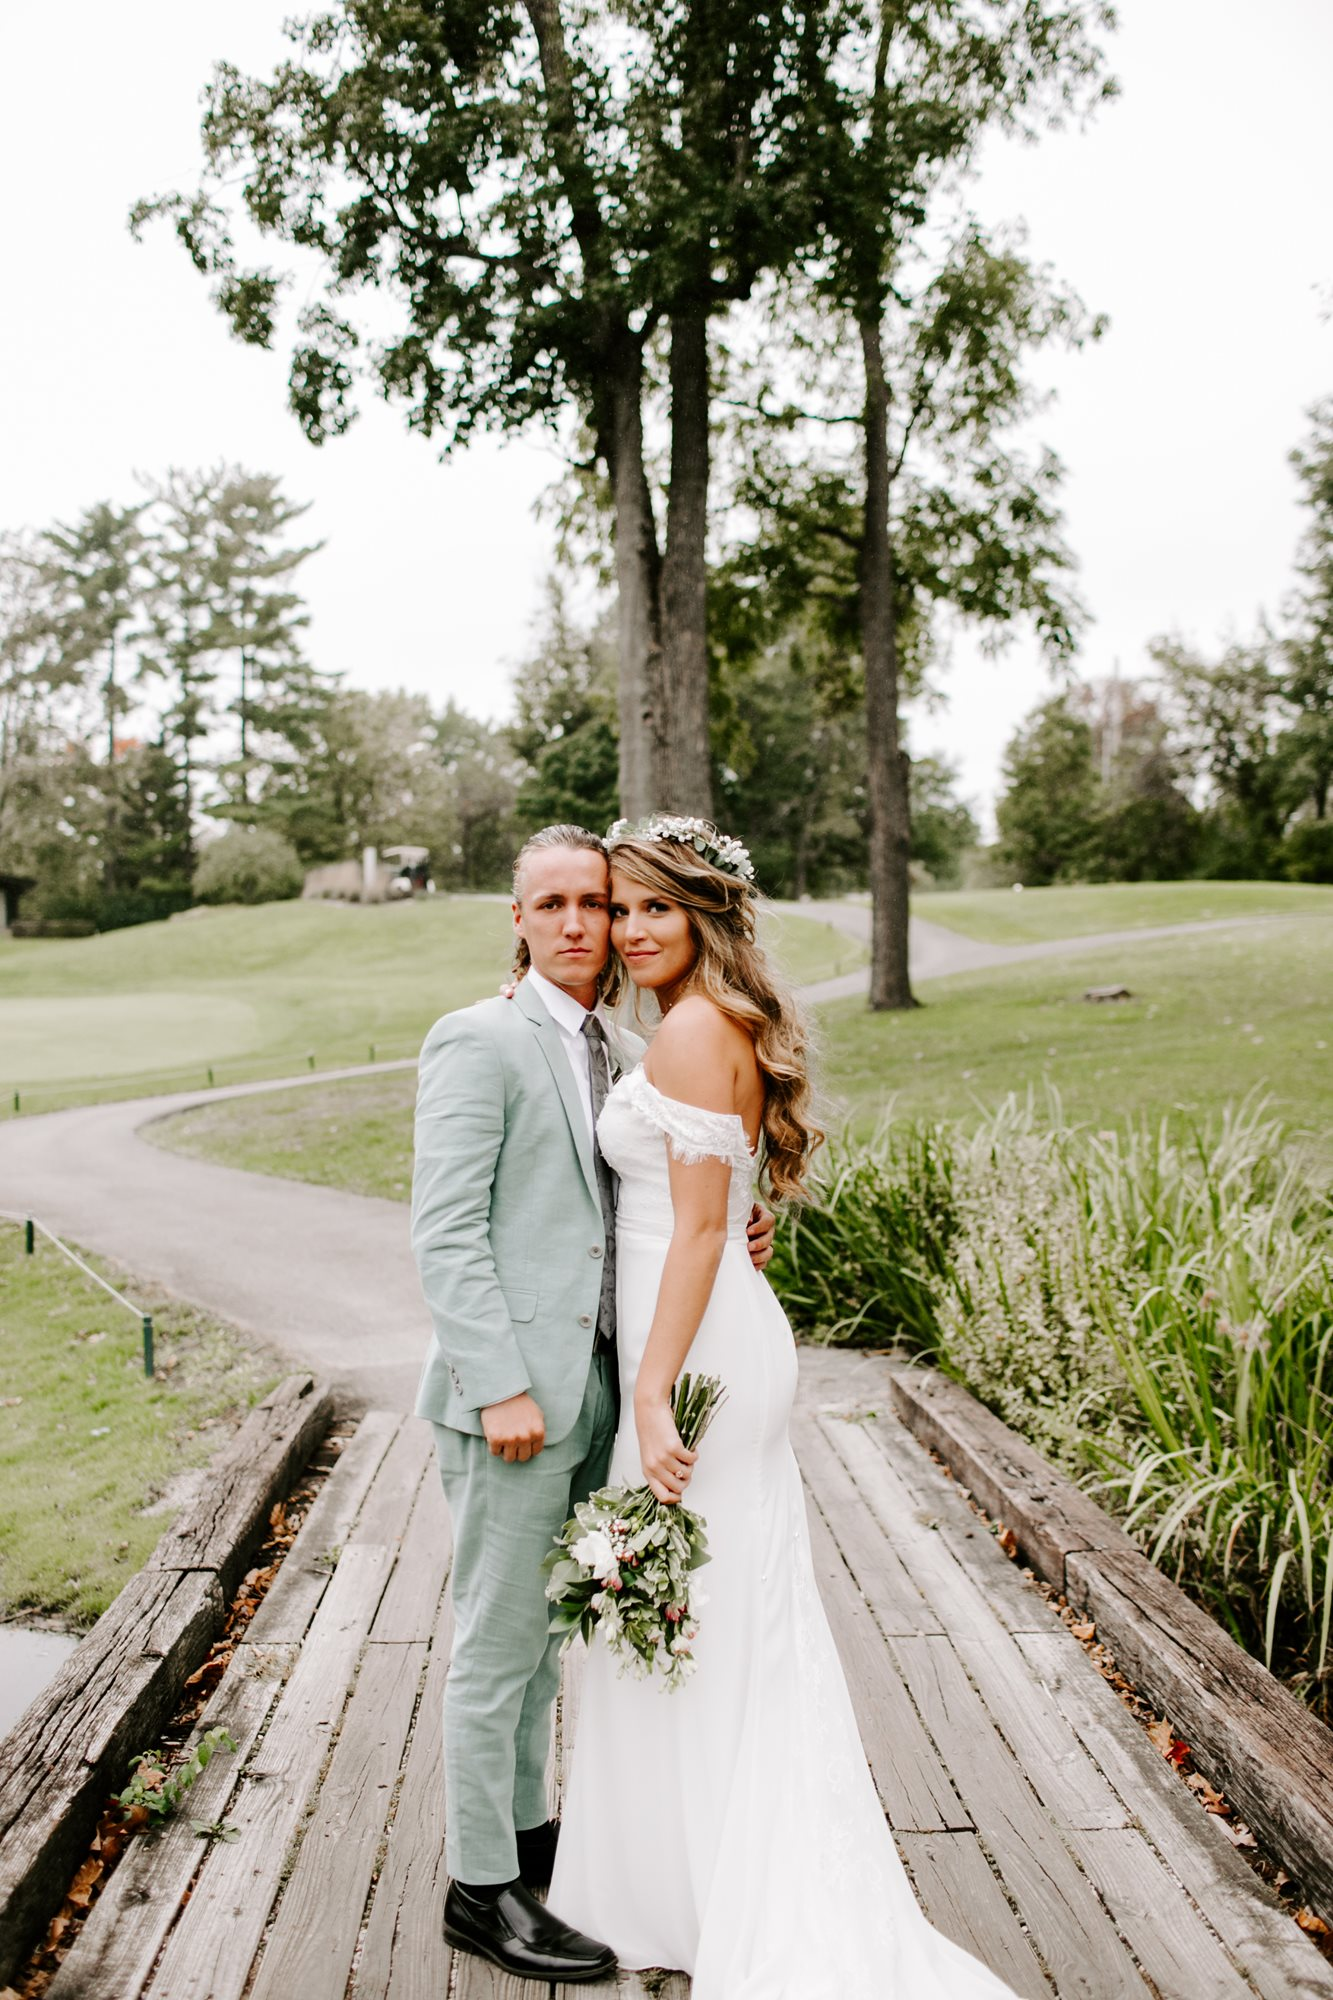 Ashleigh_and_Jordan_Wedding_at_Hillcrest_Country_Club_in_Indianapolis_Indiana_by_Emily_Elyse_Wehner_